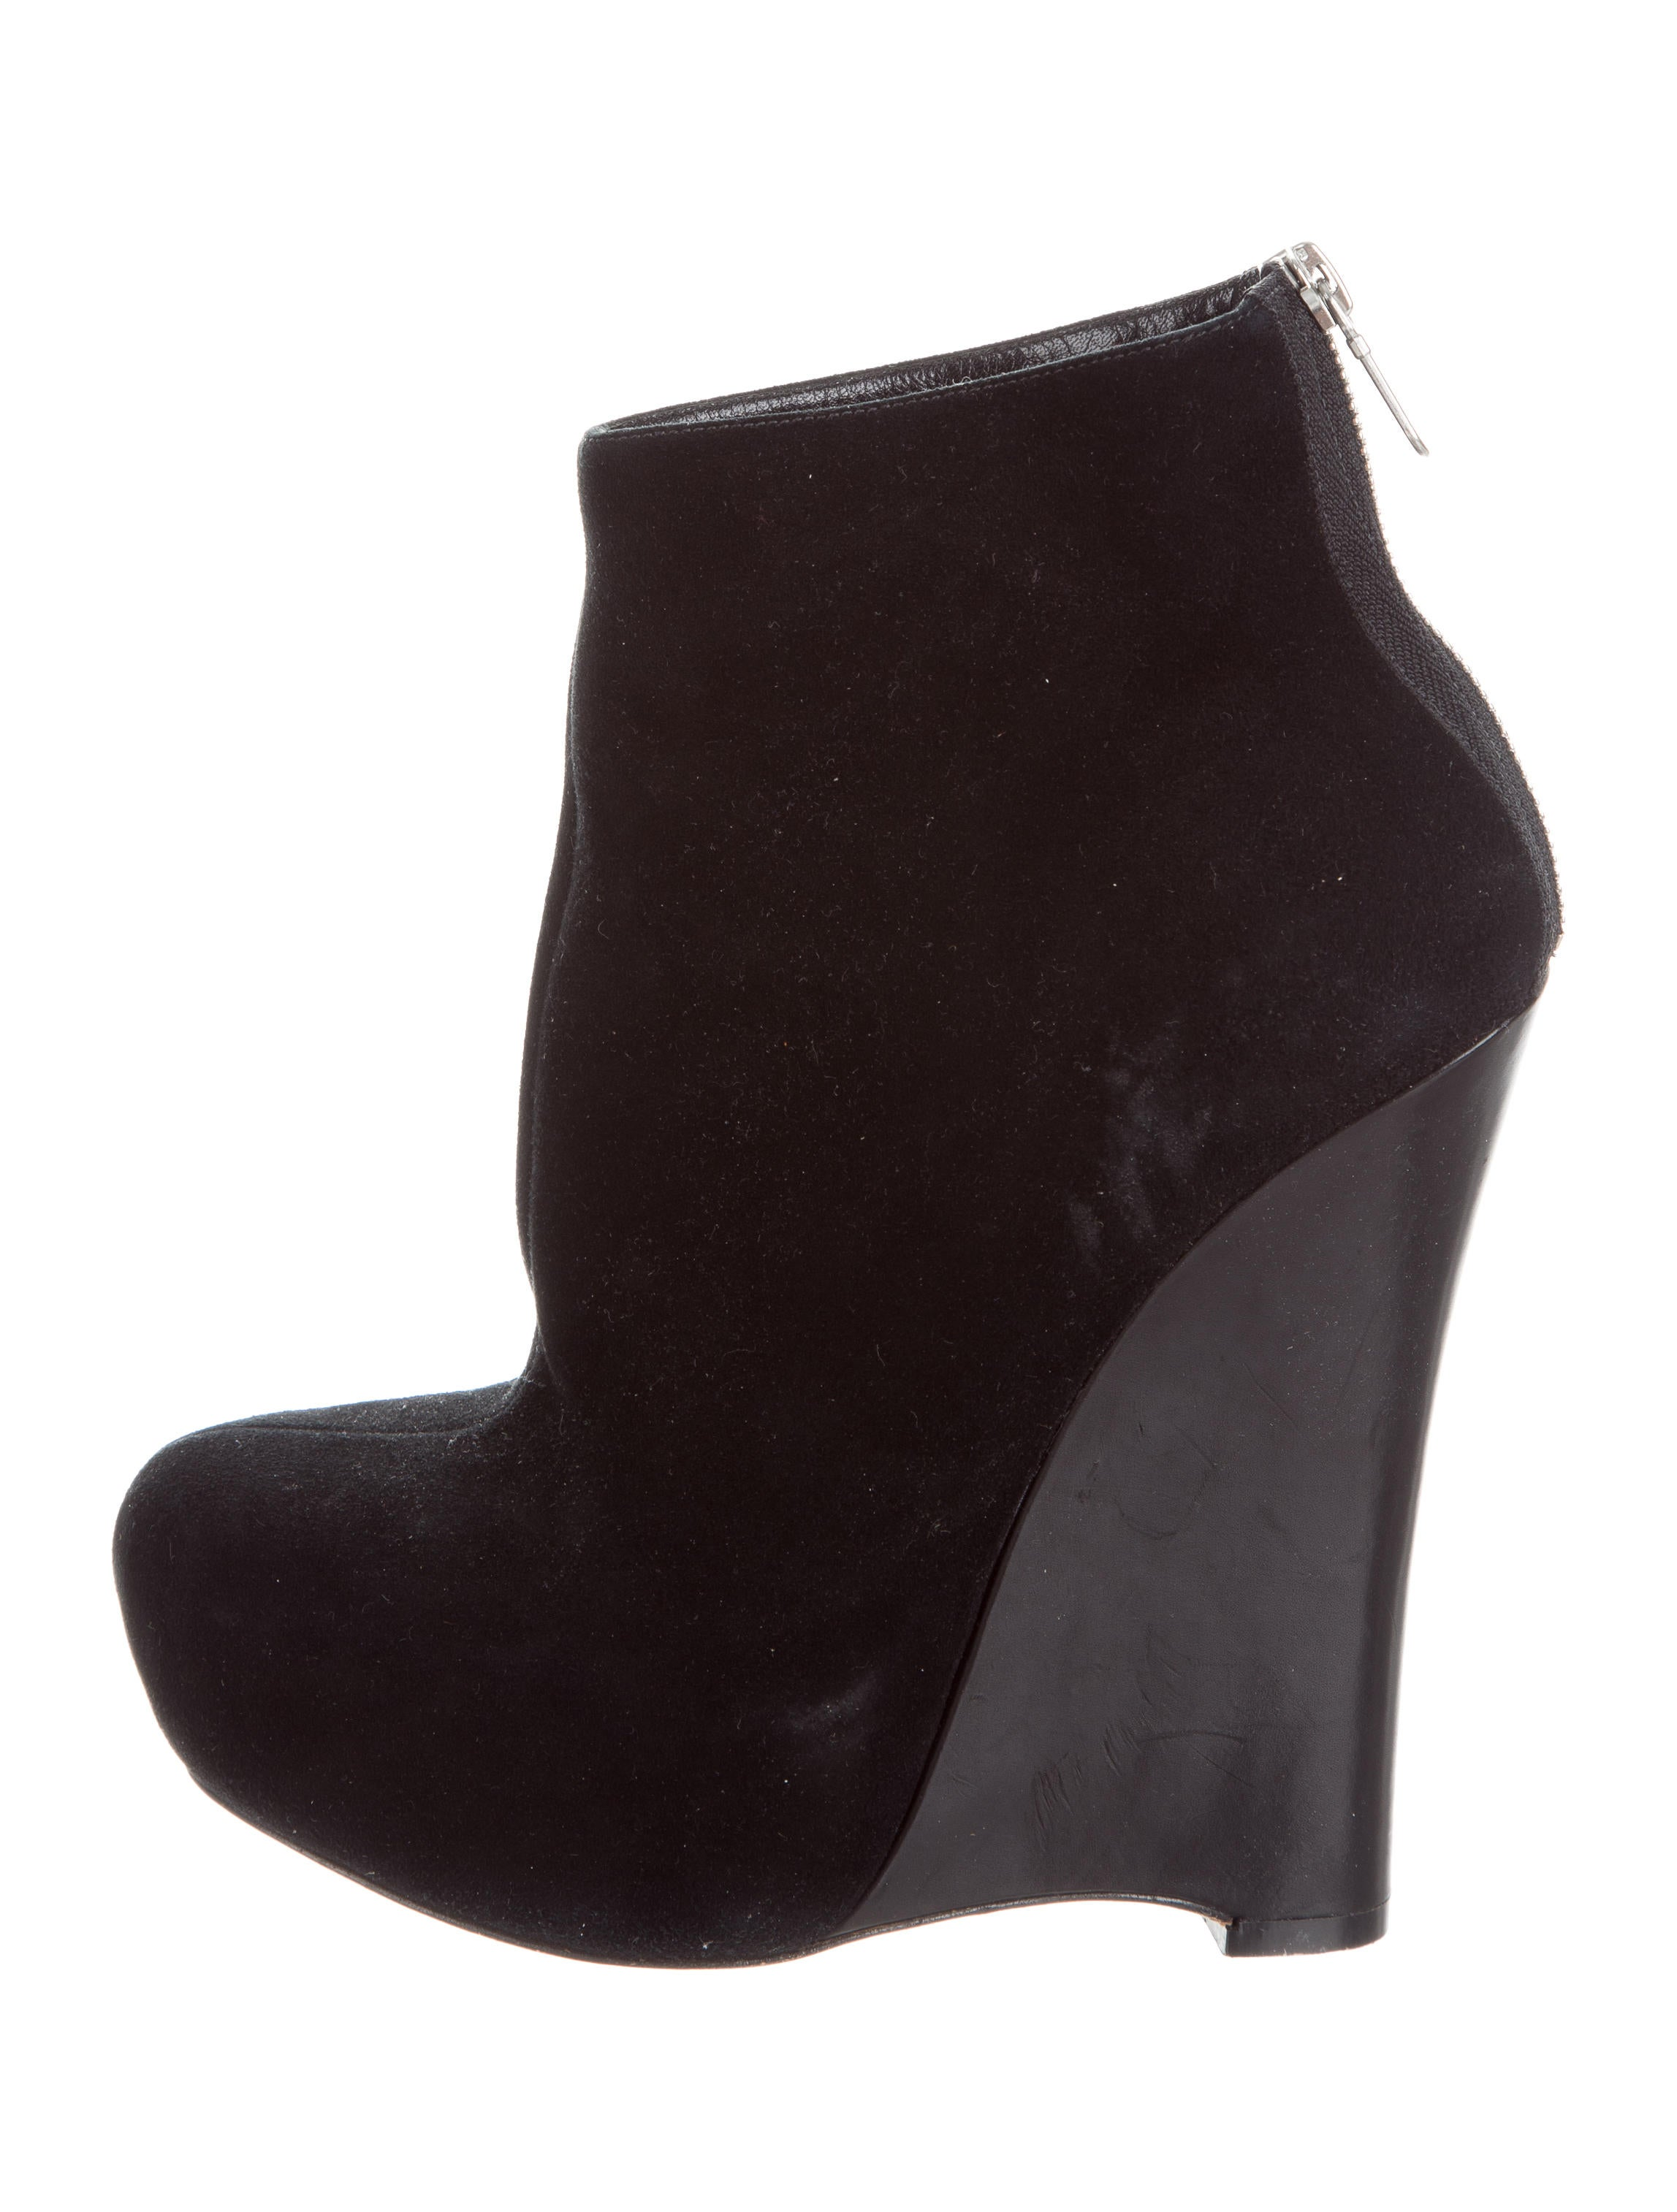 Black Suede Platform Wedge Boots Image Of Boots Imagenea Co